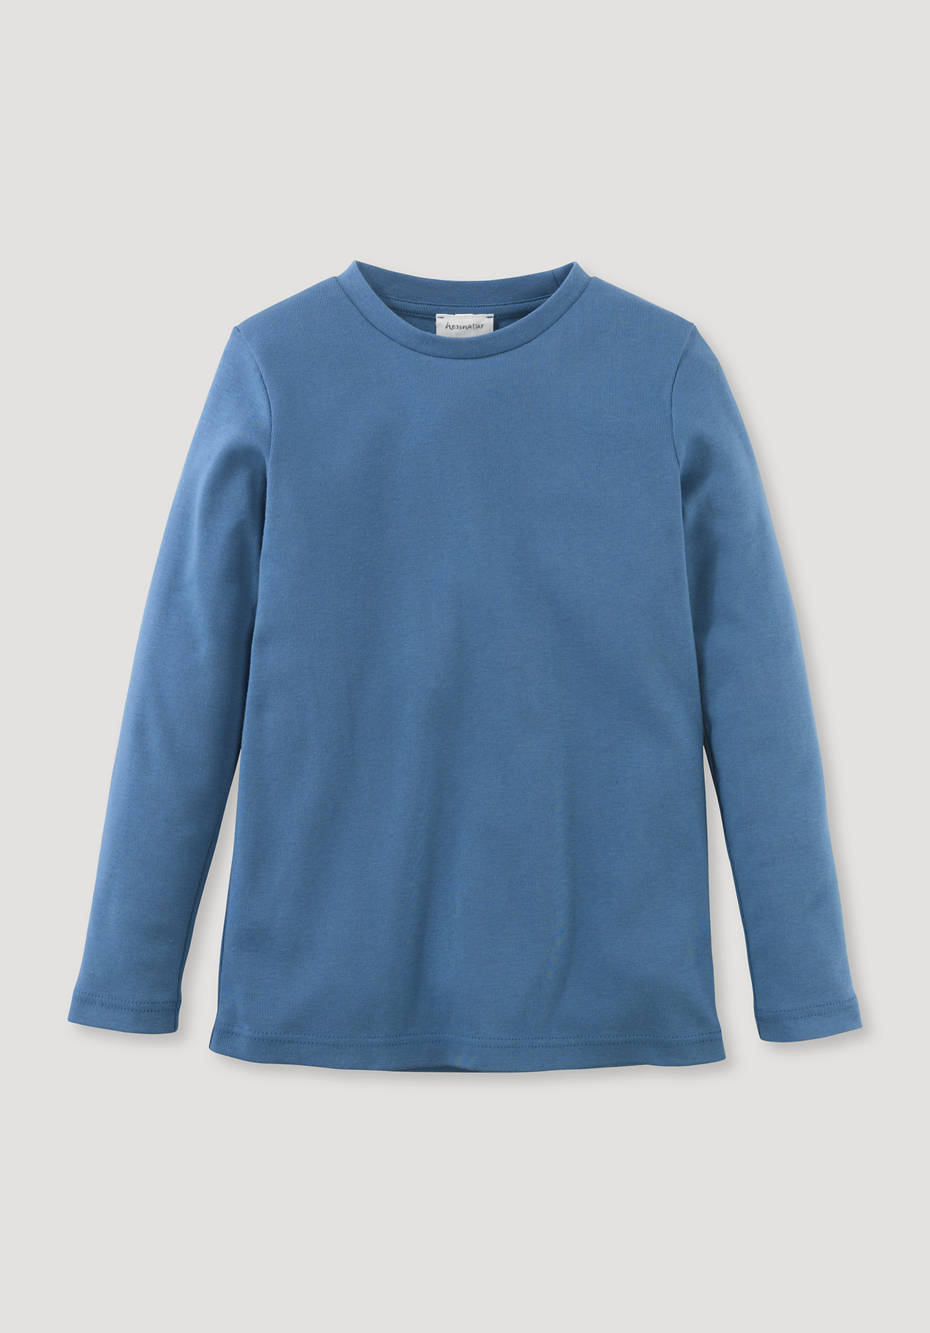 Long-sleeved shirt made from pure organic cotton